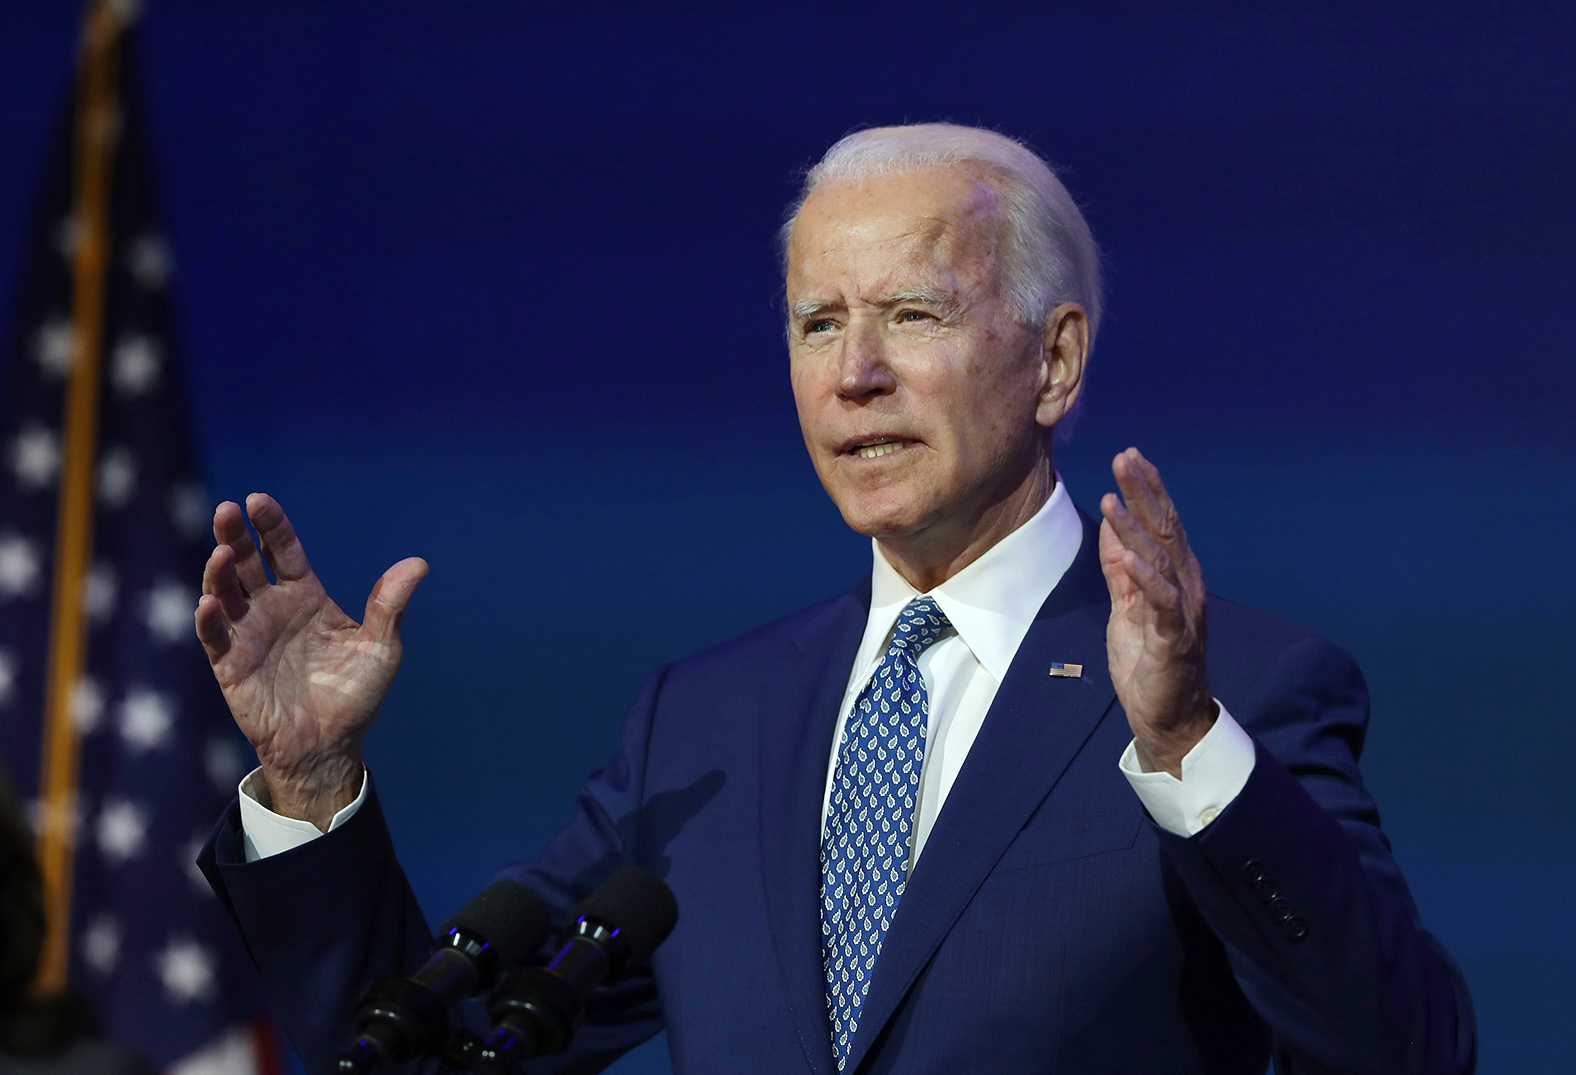 US President-elect Joe Biden speaks to the media after receiving a briefing from the transition Covid-19 advisory board at the Queen Theater in Wilmington, Delaware, on November 09.